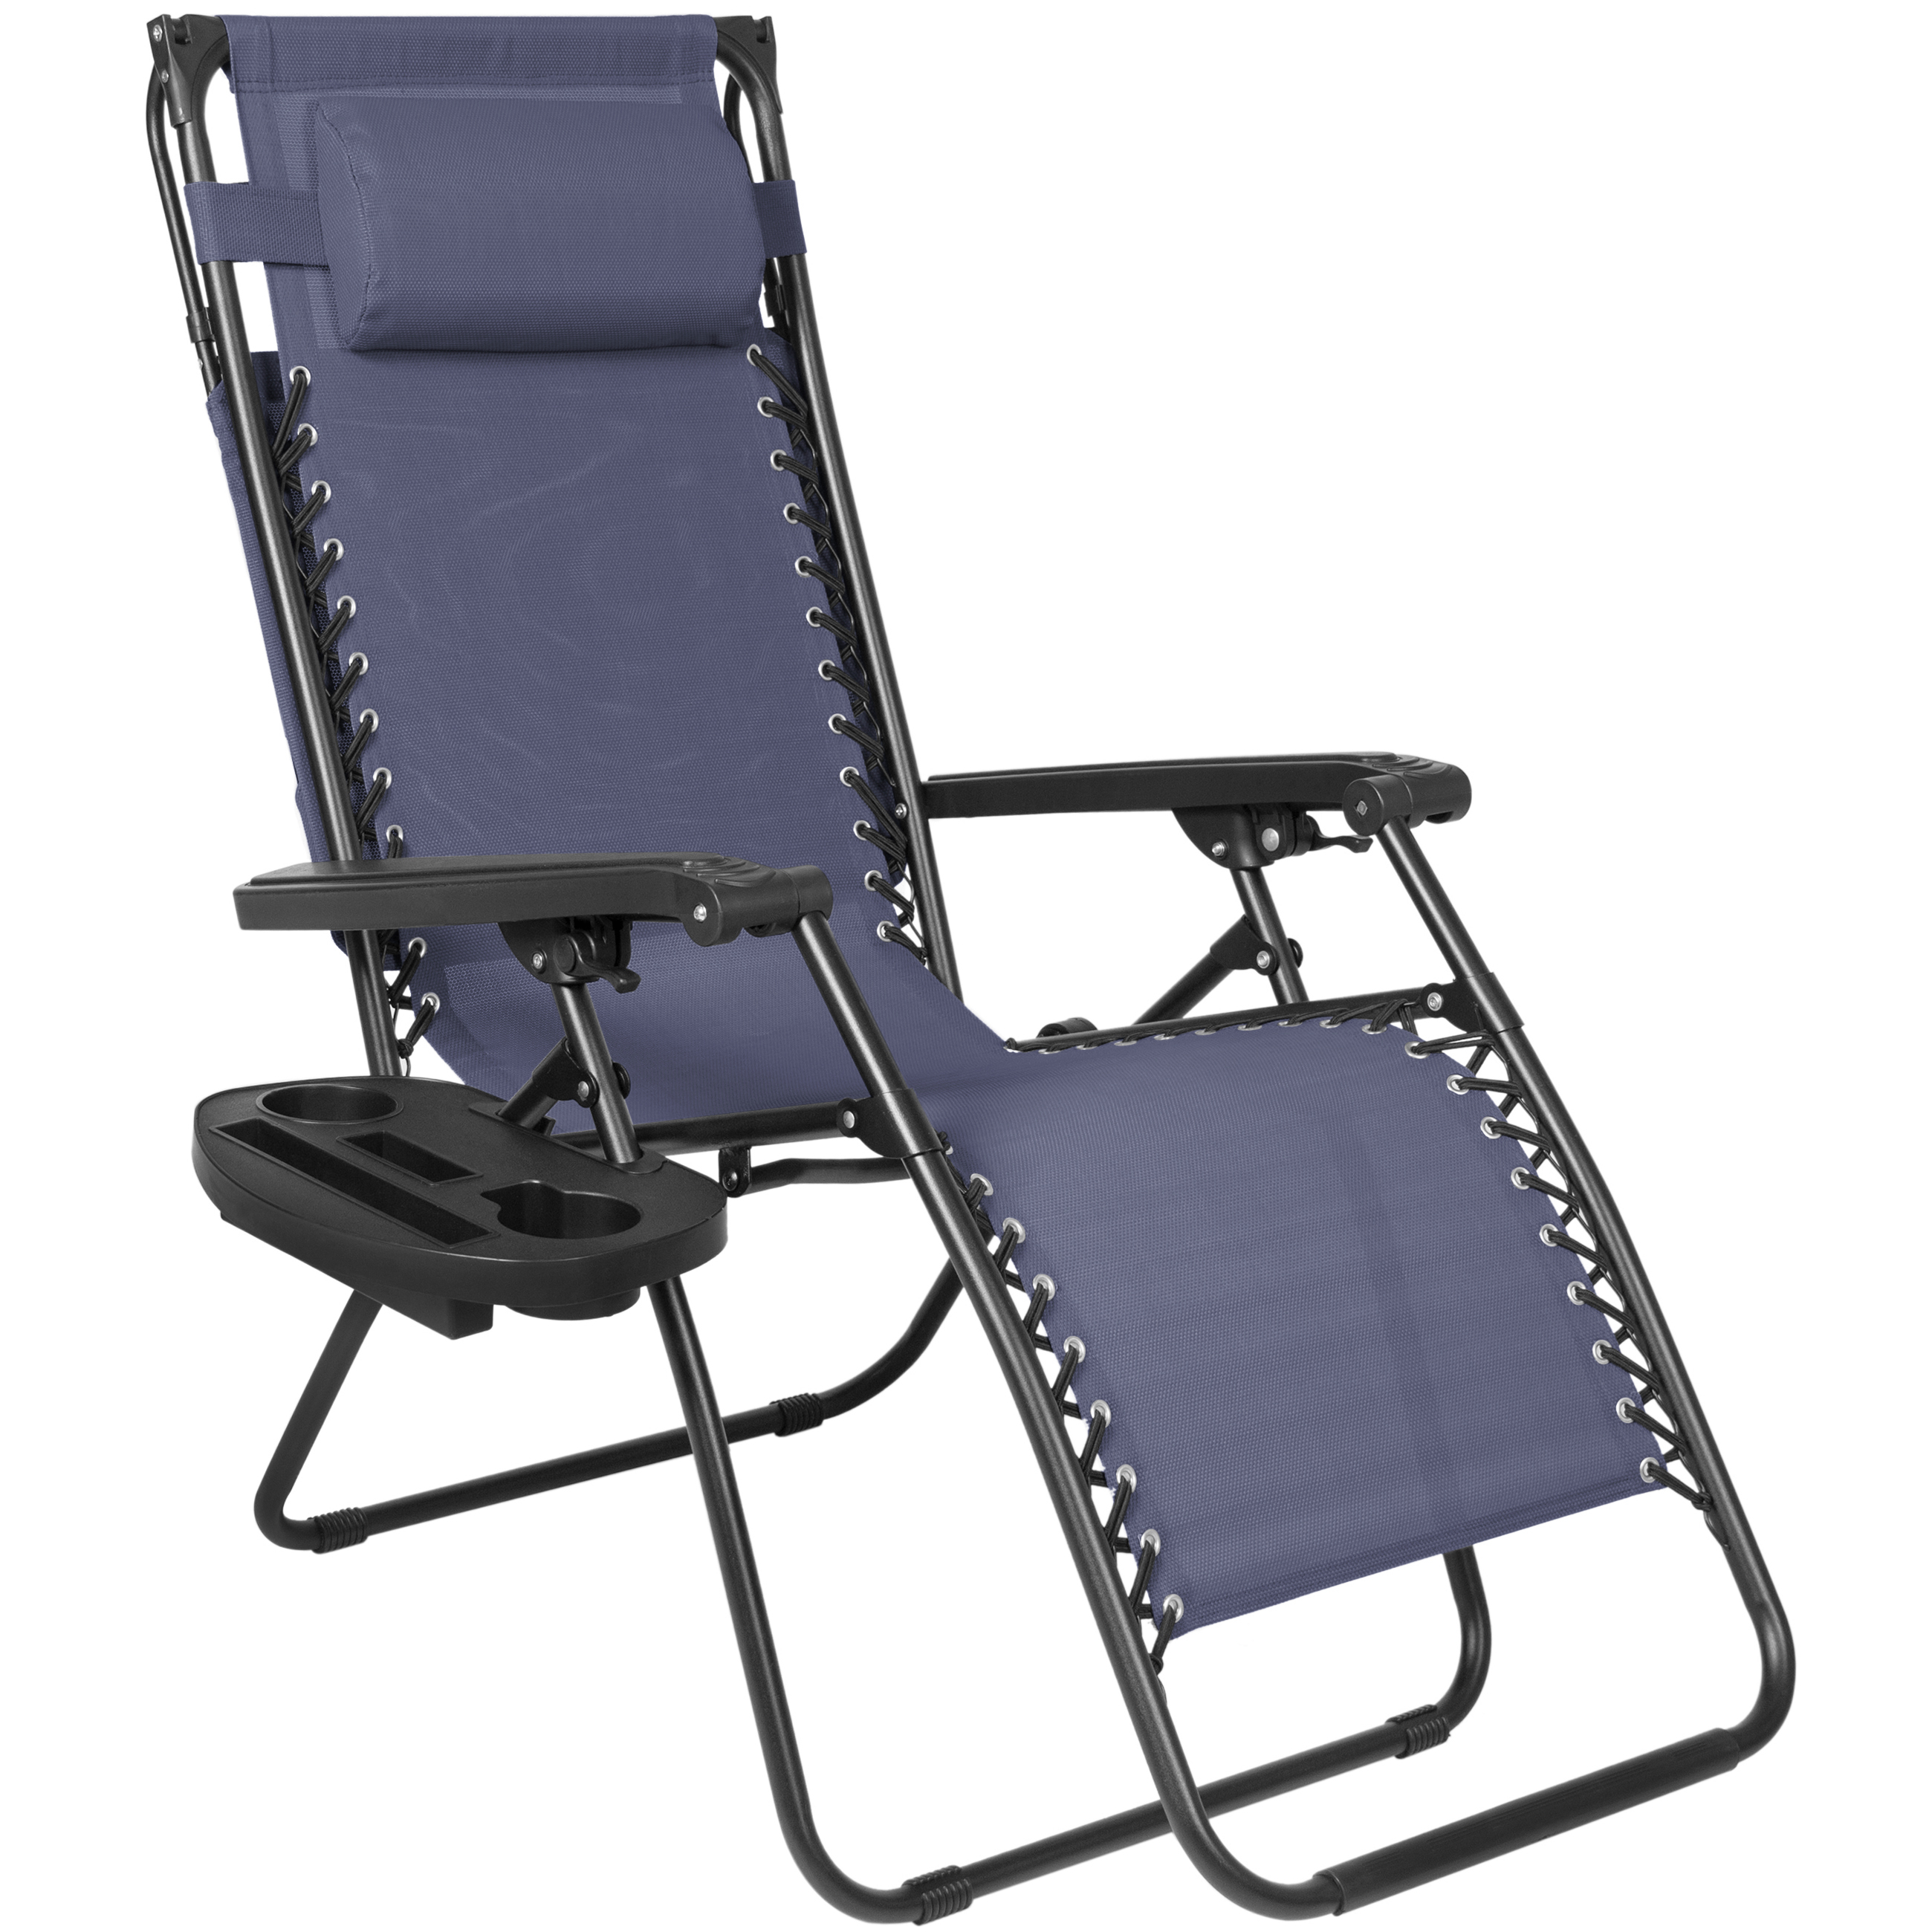 zero gravity chair recliner shoe shine for sale folding lounge w canopy shade